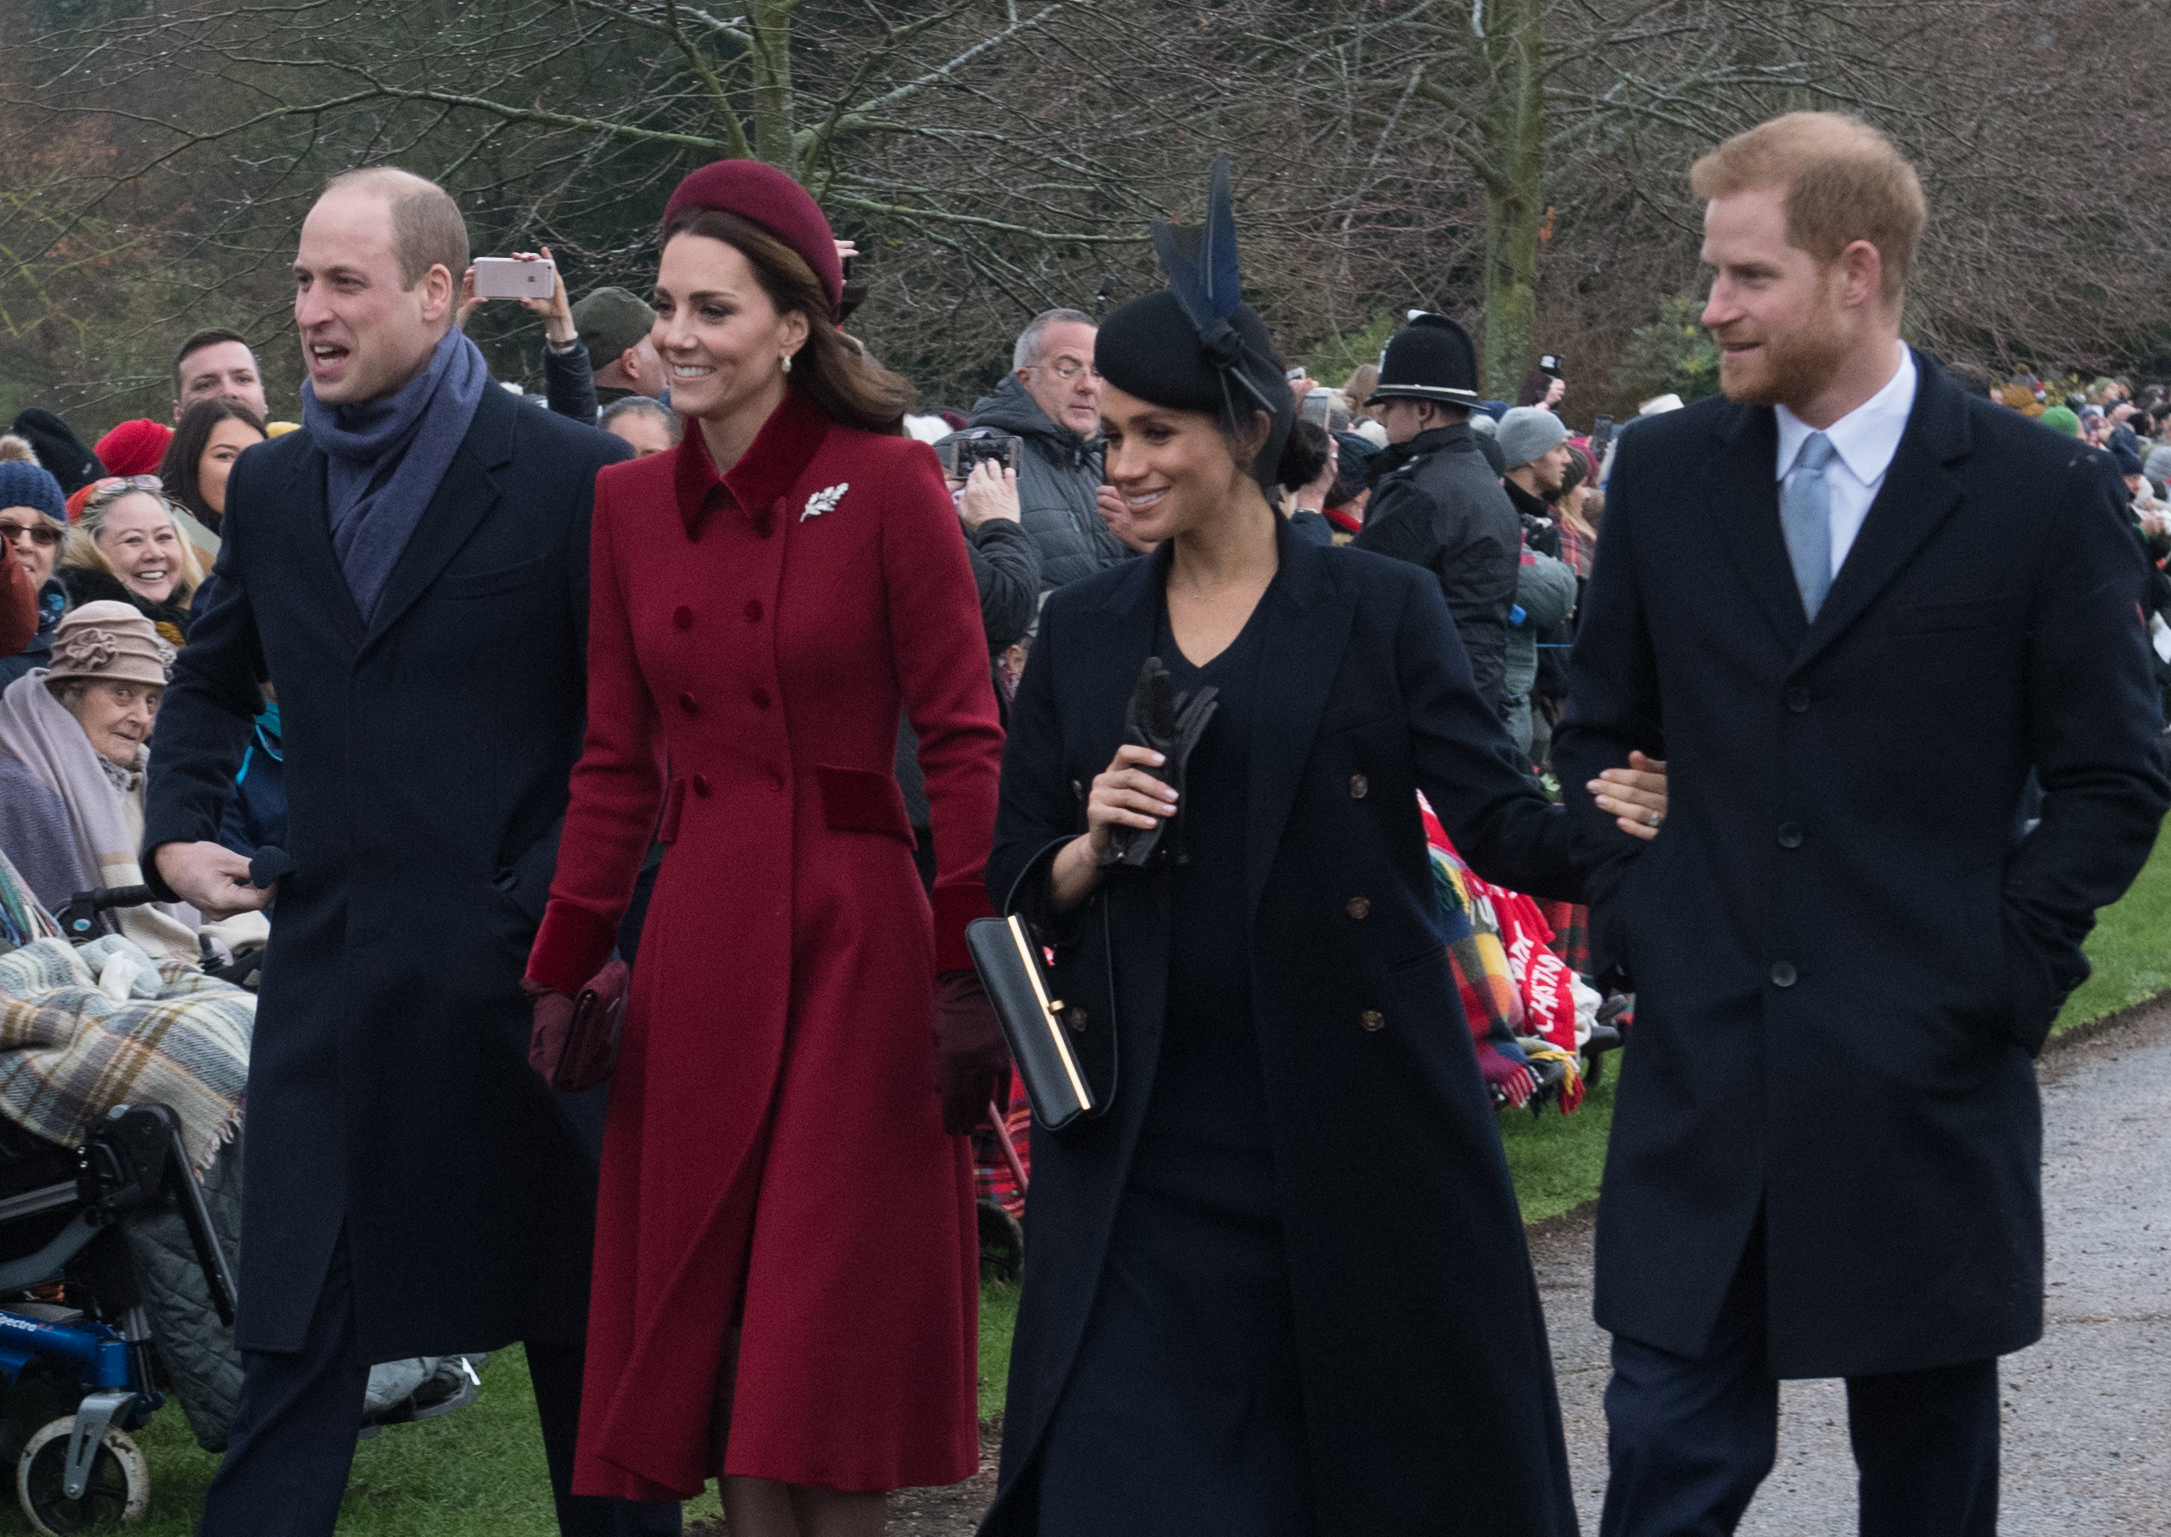 Prince Harry and Meghan Markle 'set to meet Prince William and Kate Middleton in person for first time since rift'